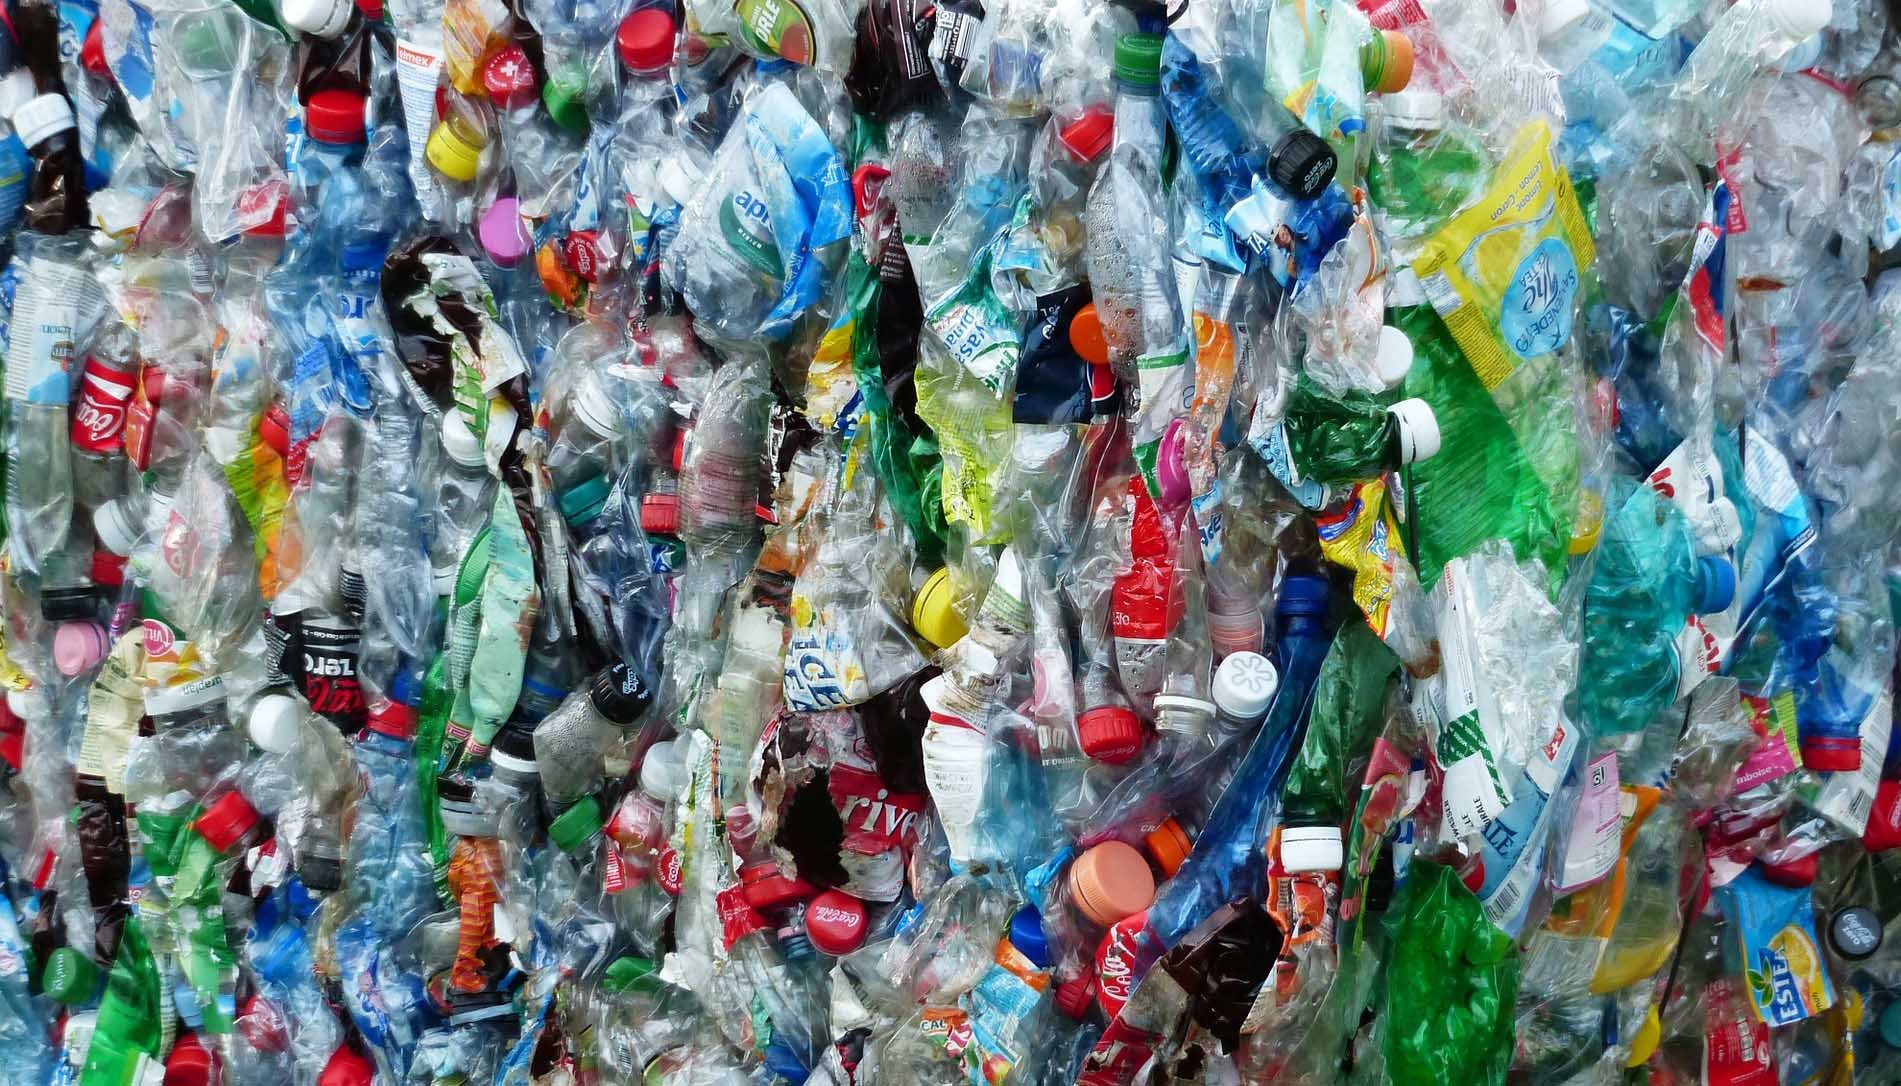 A new substance that degrades plastic could help address environmental pollution. (Source: Pixabay)